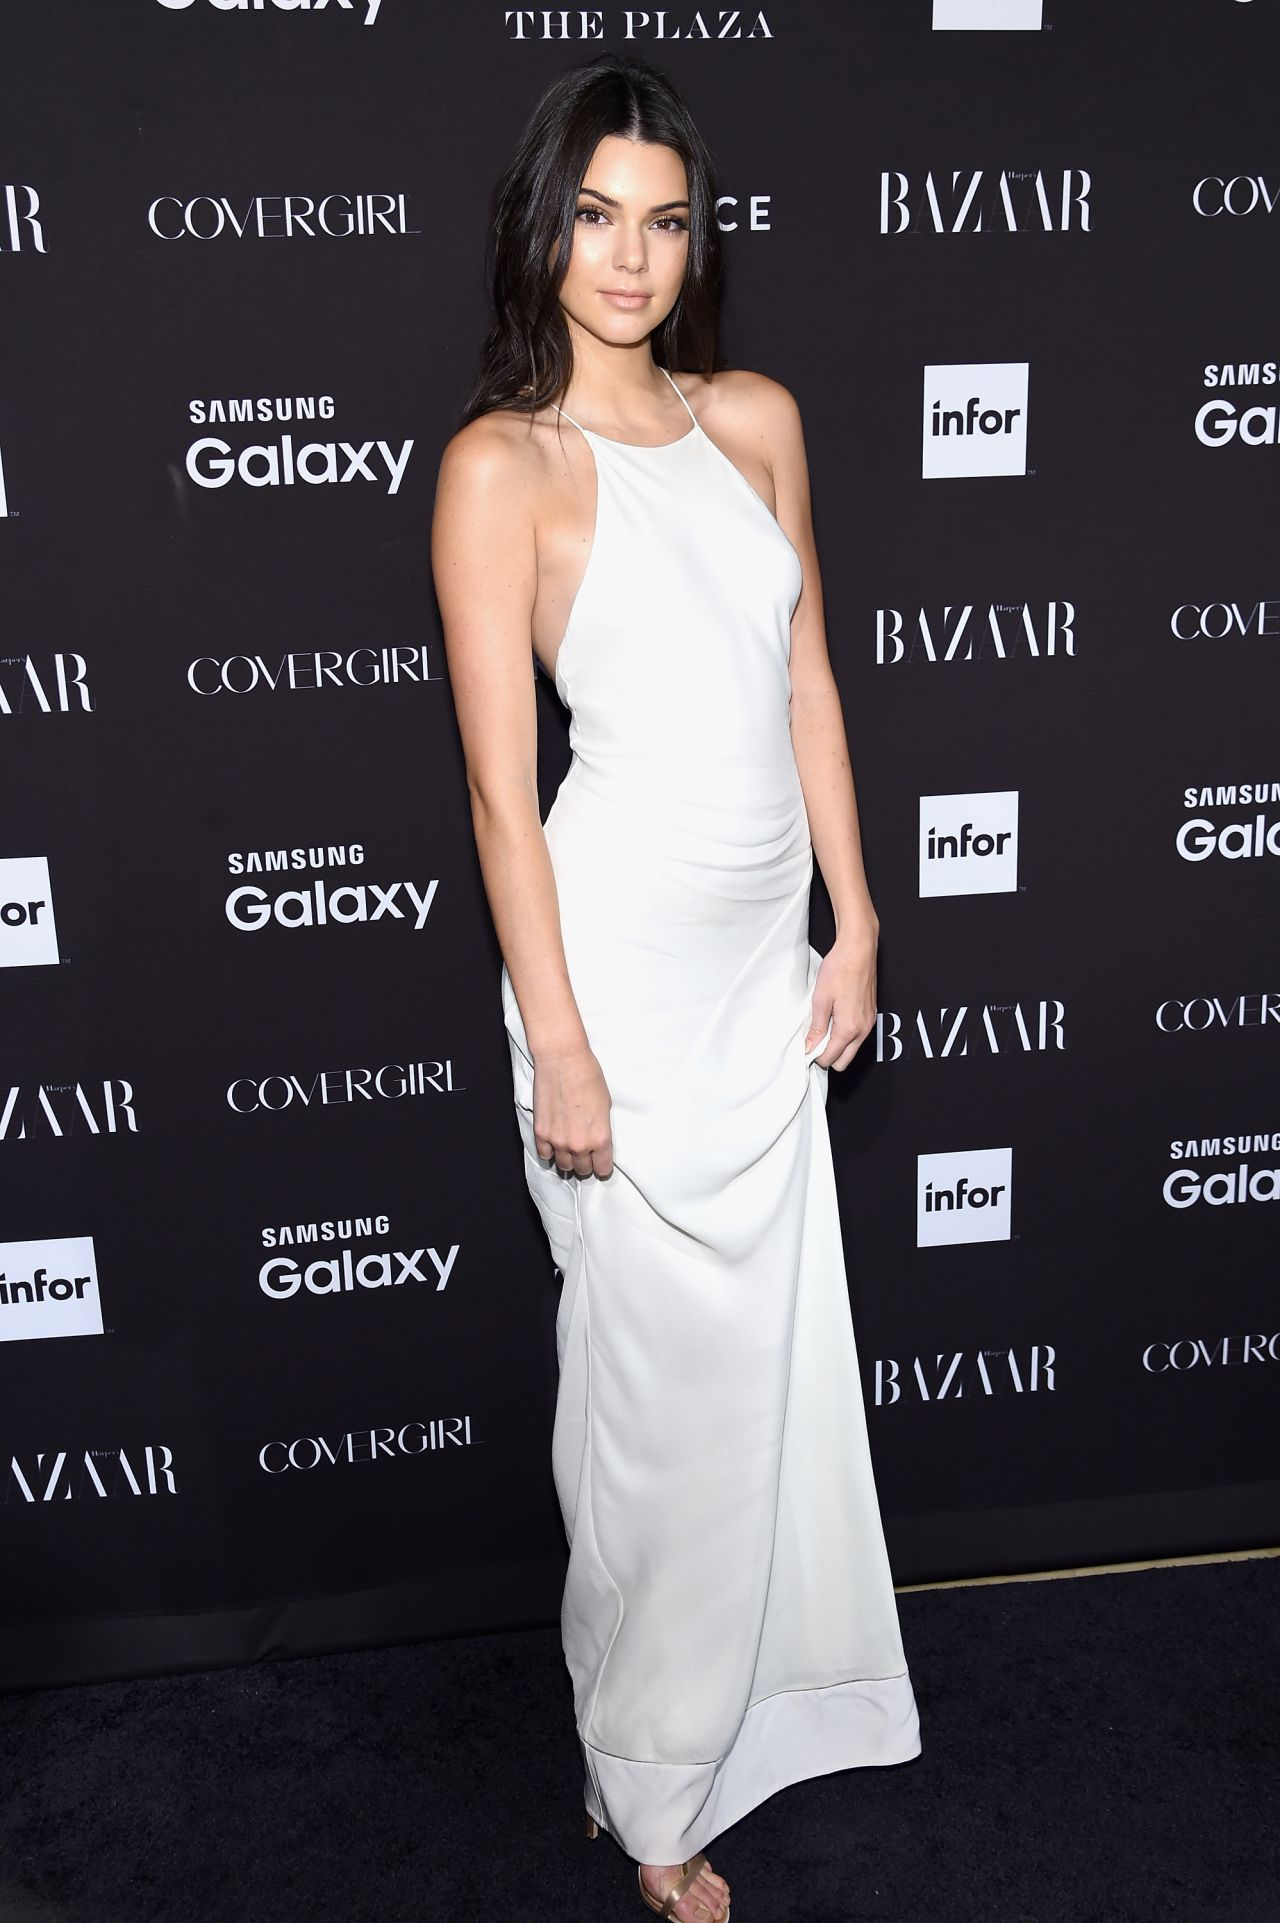 kendall-jenner-2015-harper-s-bazaar-icons-event-in-new-york-city_1